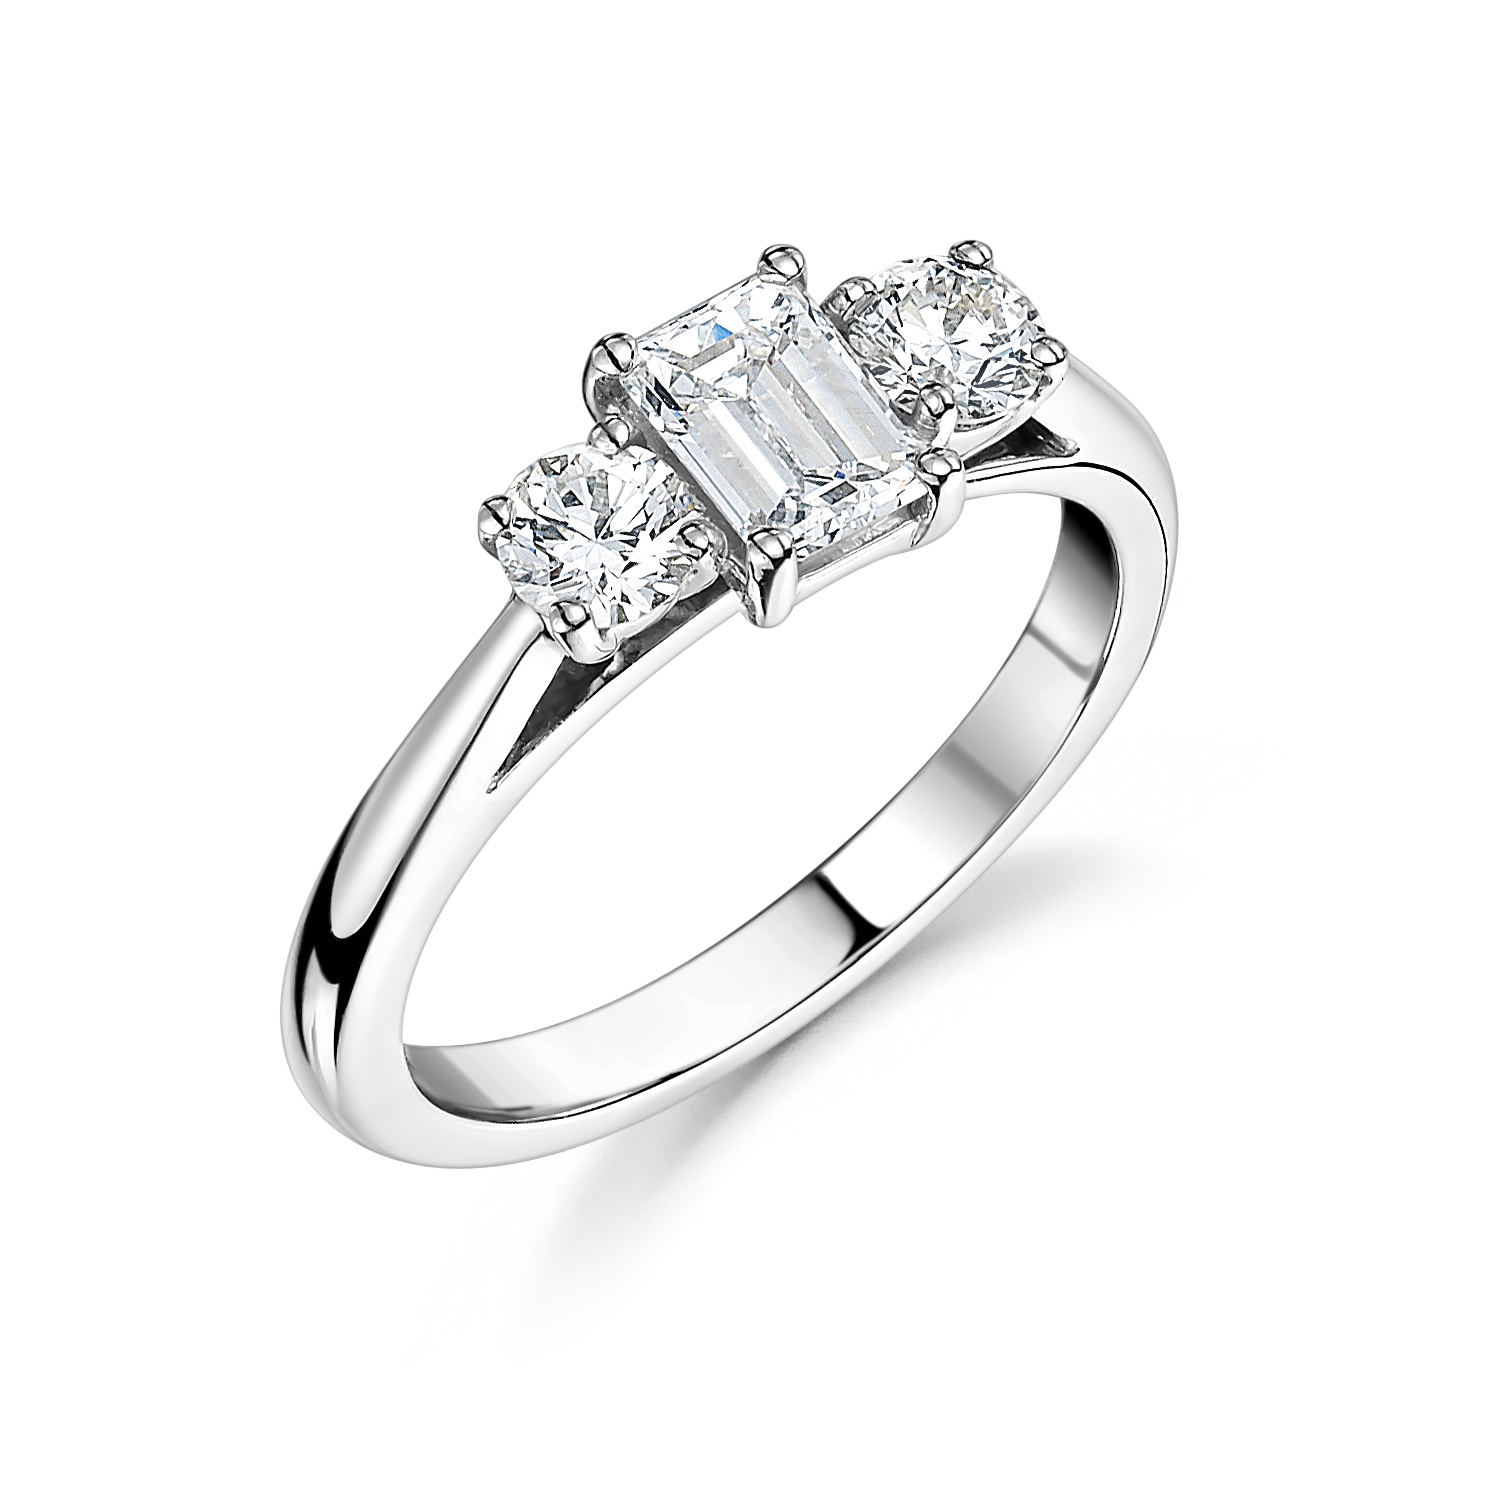 c569a22d411f 18ct White Gold Emerald Cut   Brilliant Cut Diamond Three Stone Engagement  Ring 0.75ct